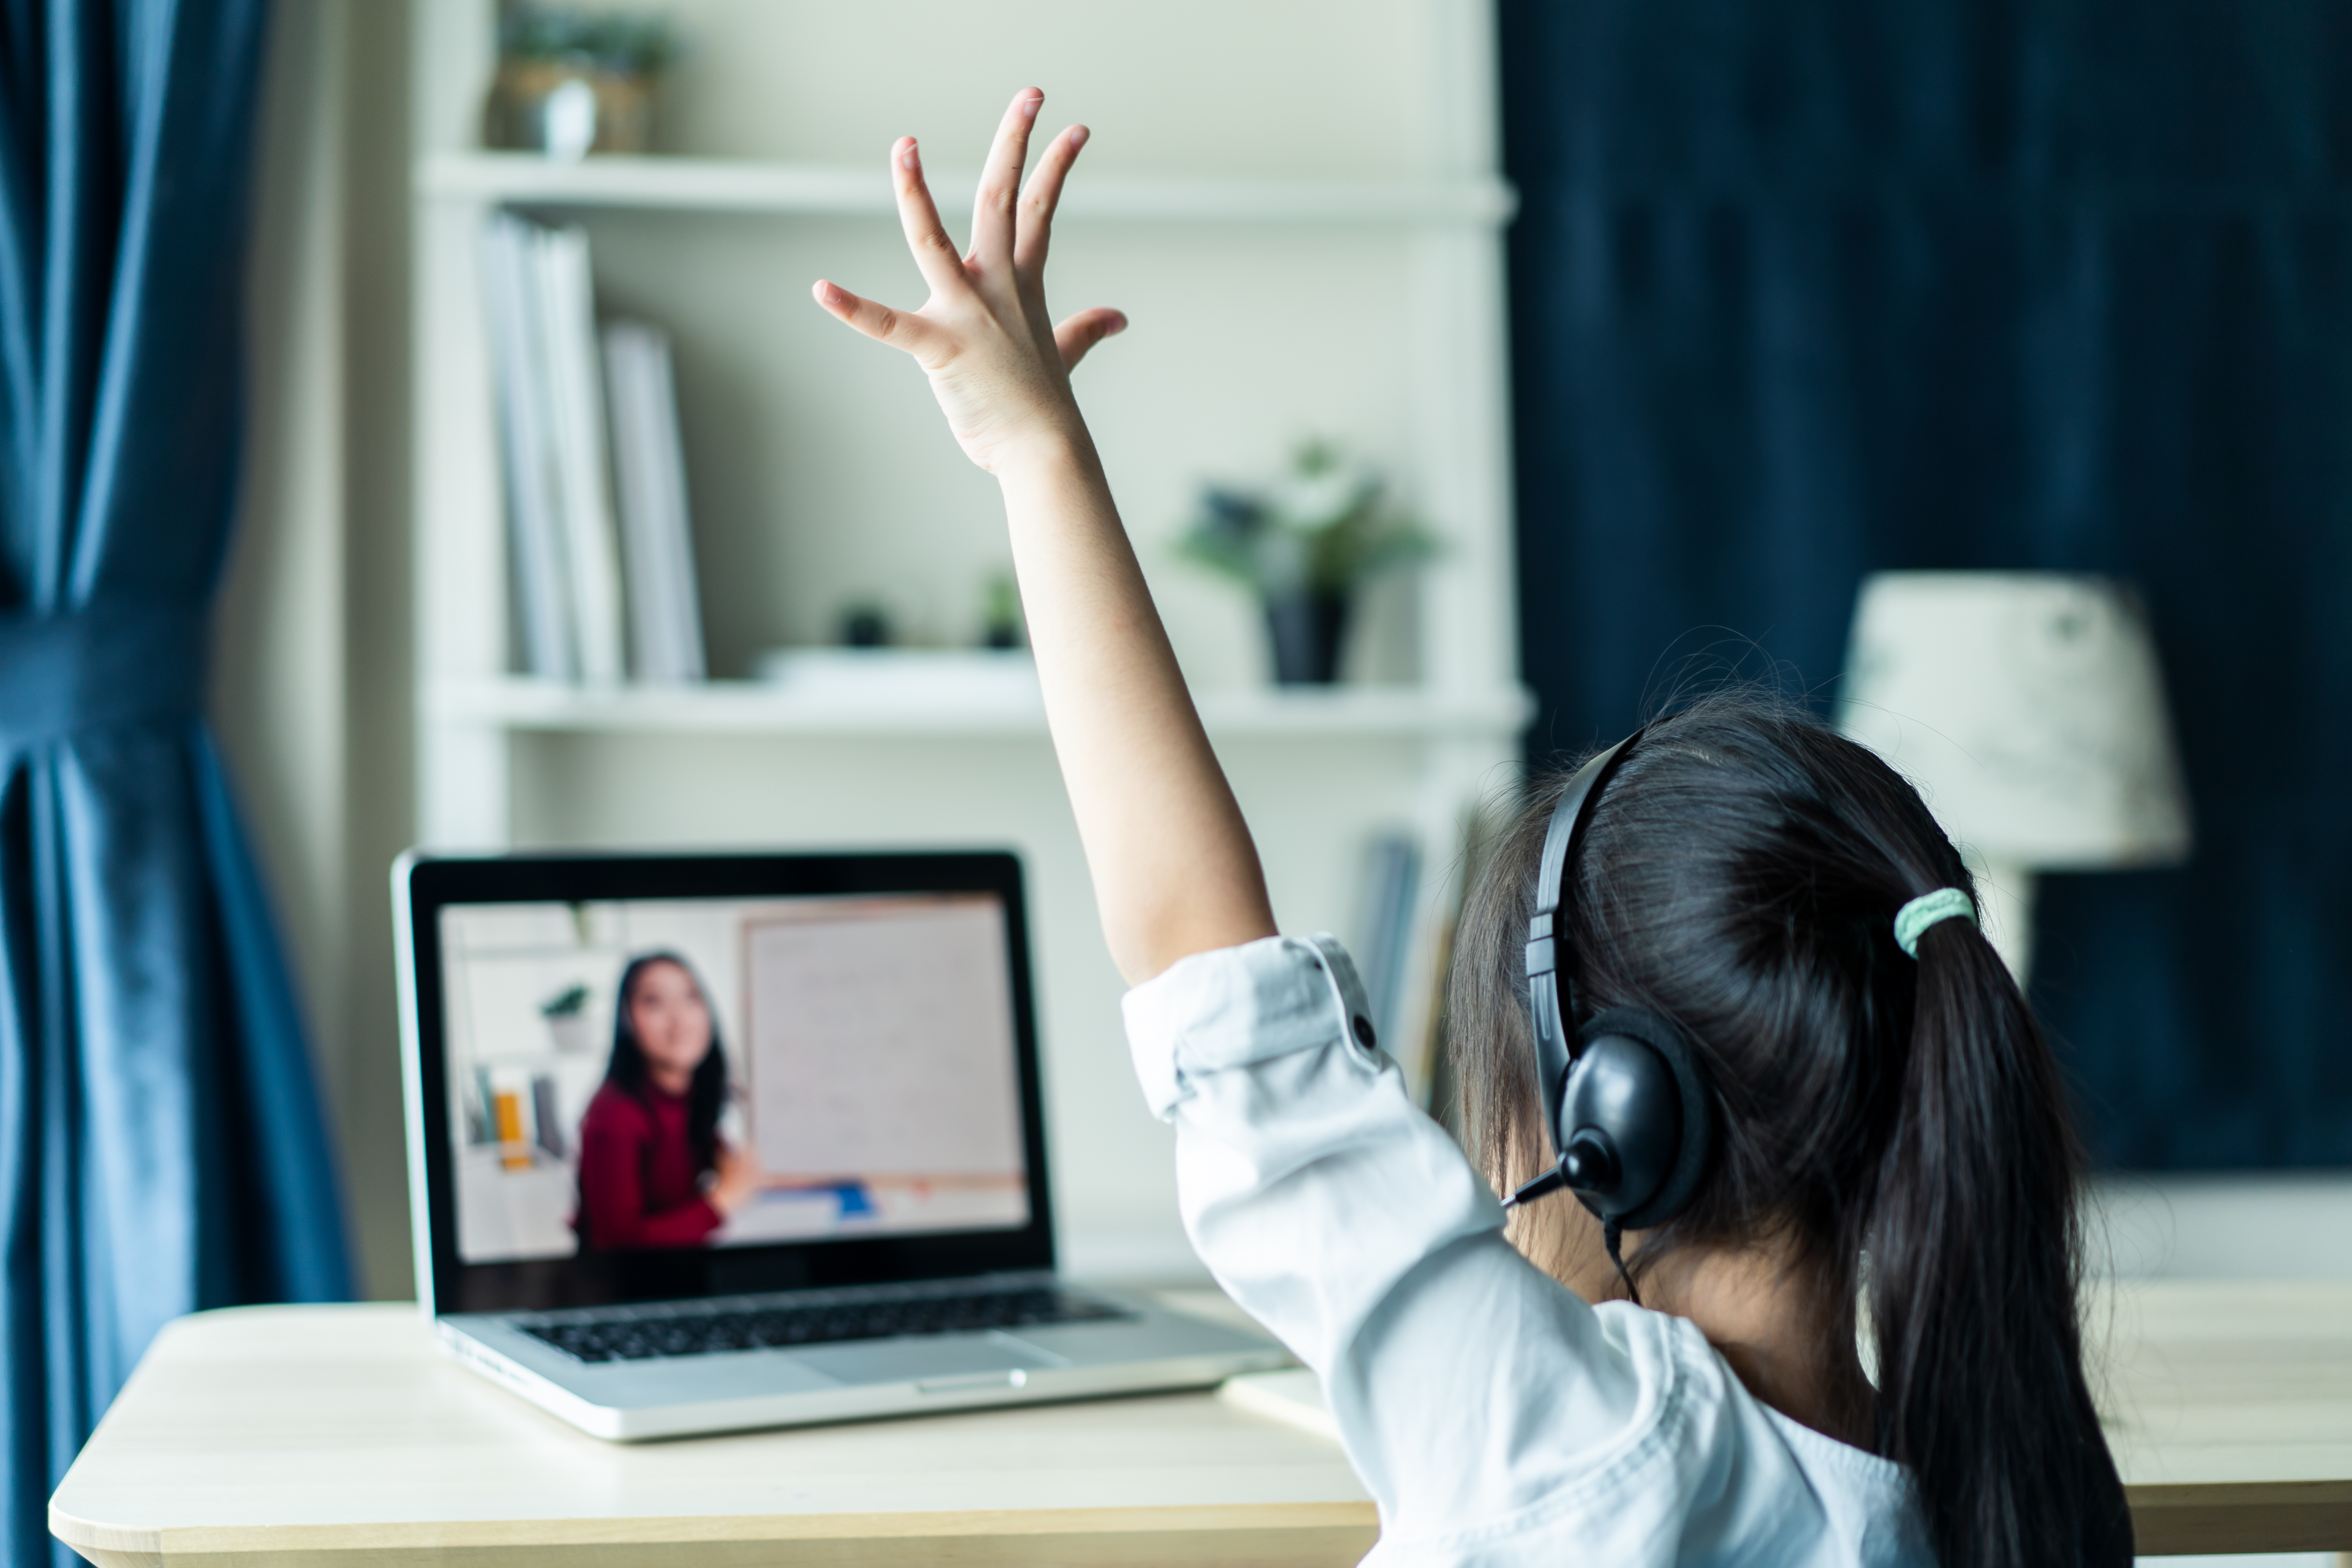 young female student raising hand during online class